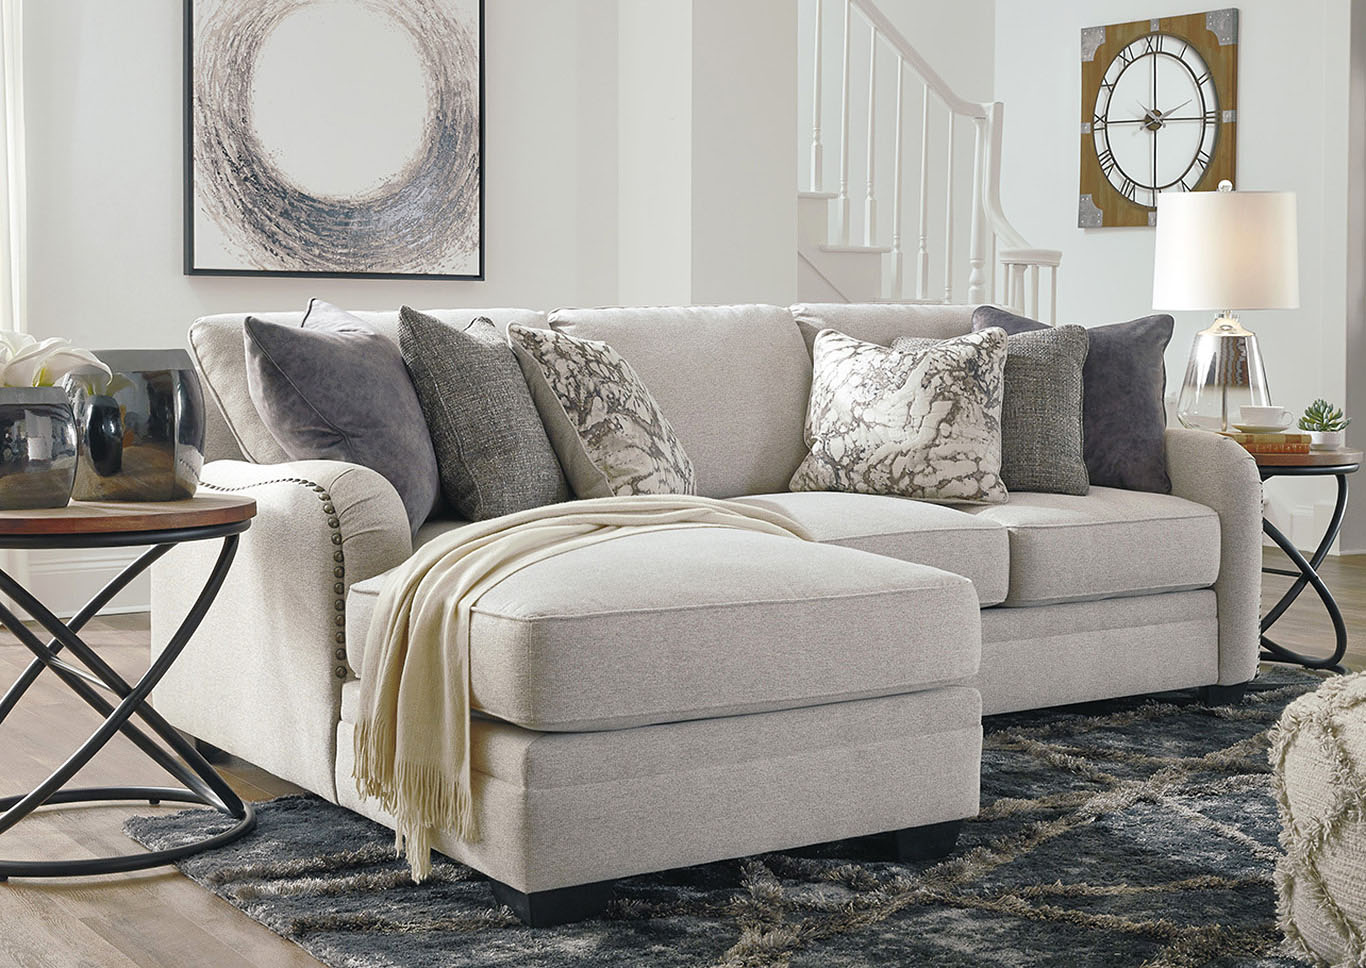 Dellara Chalk Sectional w/LAF Chaise,Benchcraft